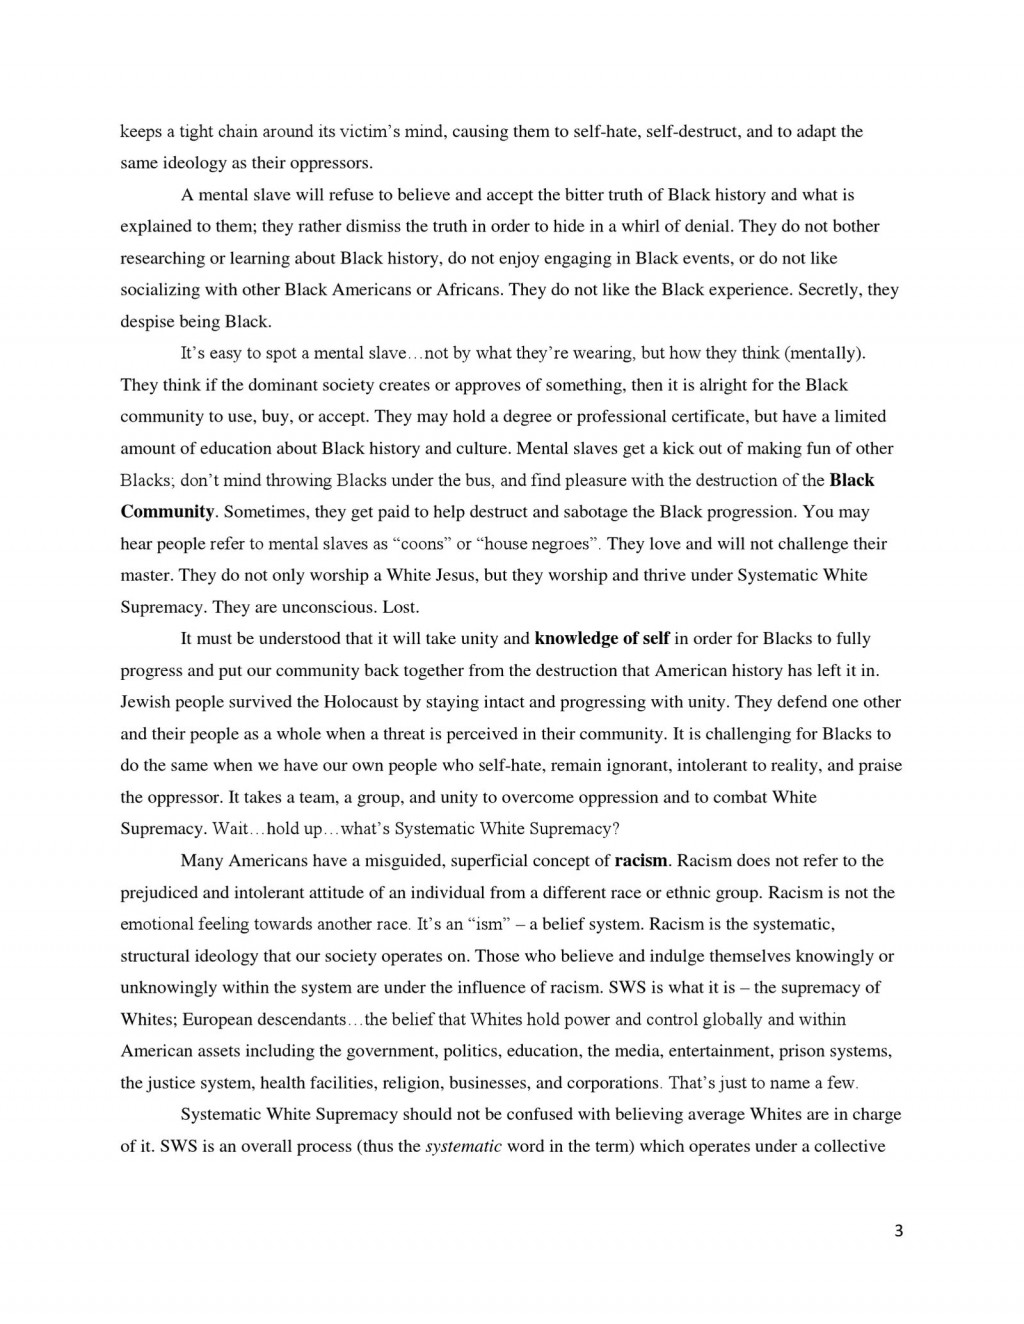 003 Large Essay Example On Exceptional Racism In Hindi Conclusion Othello Large